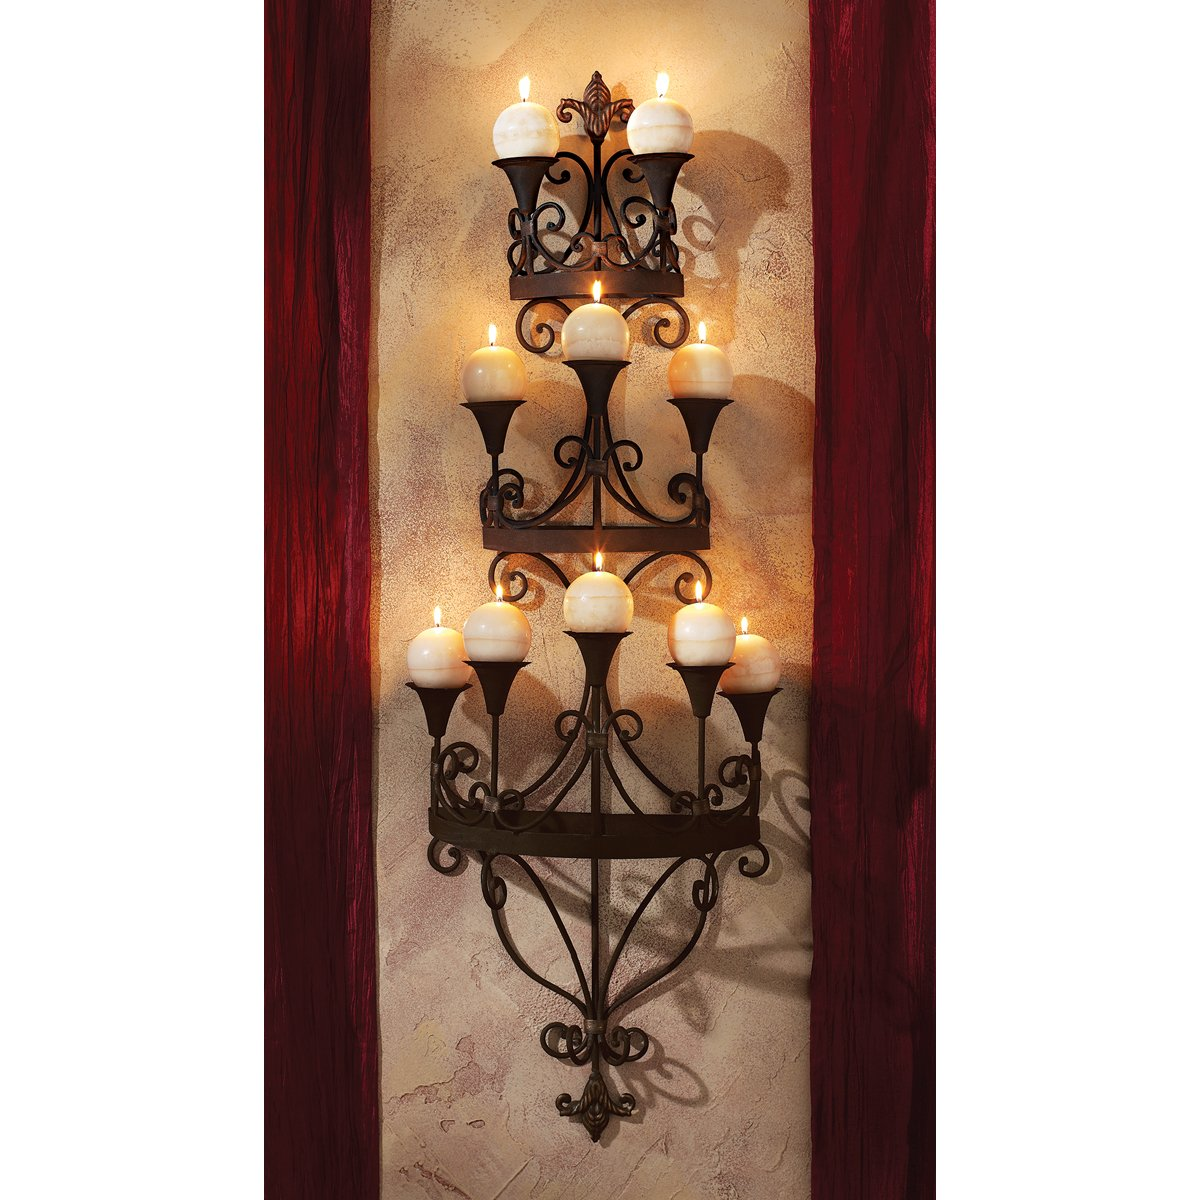 Design Toscano Carbonne Candle Chandelier Wall Sconce, Black